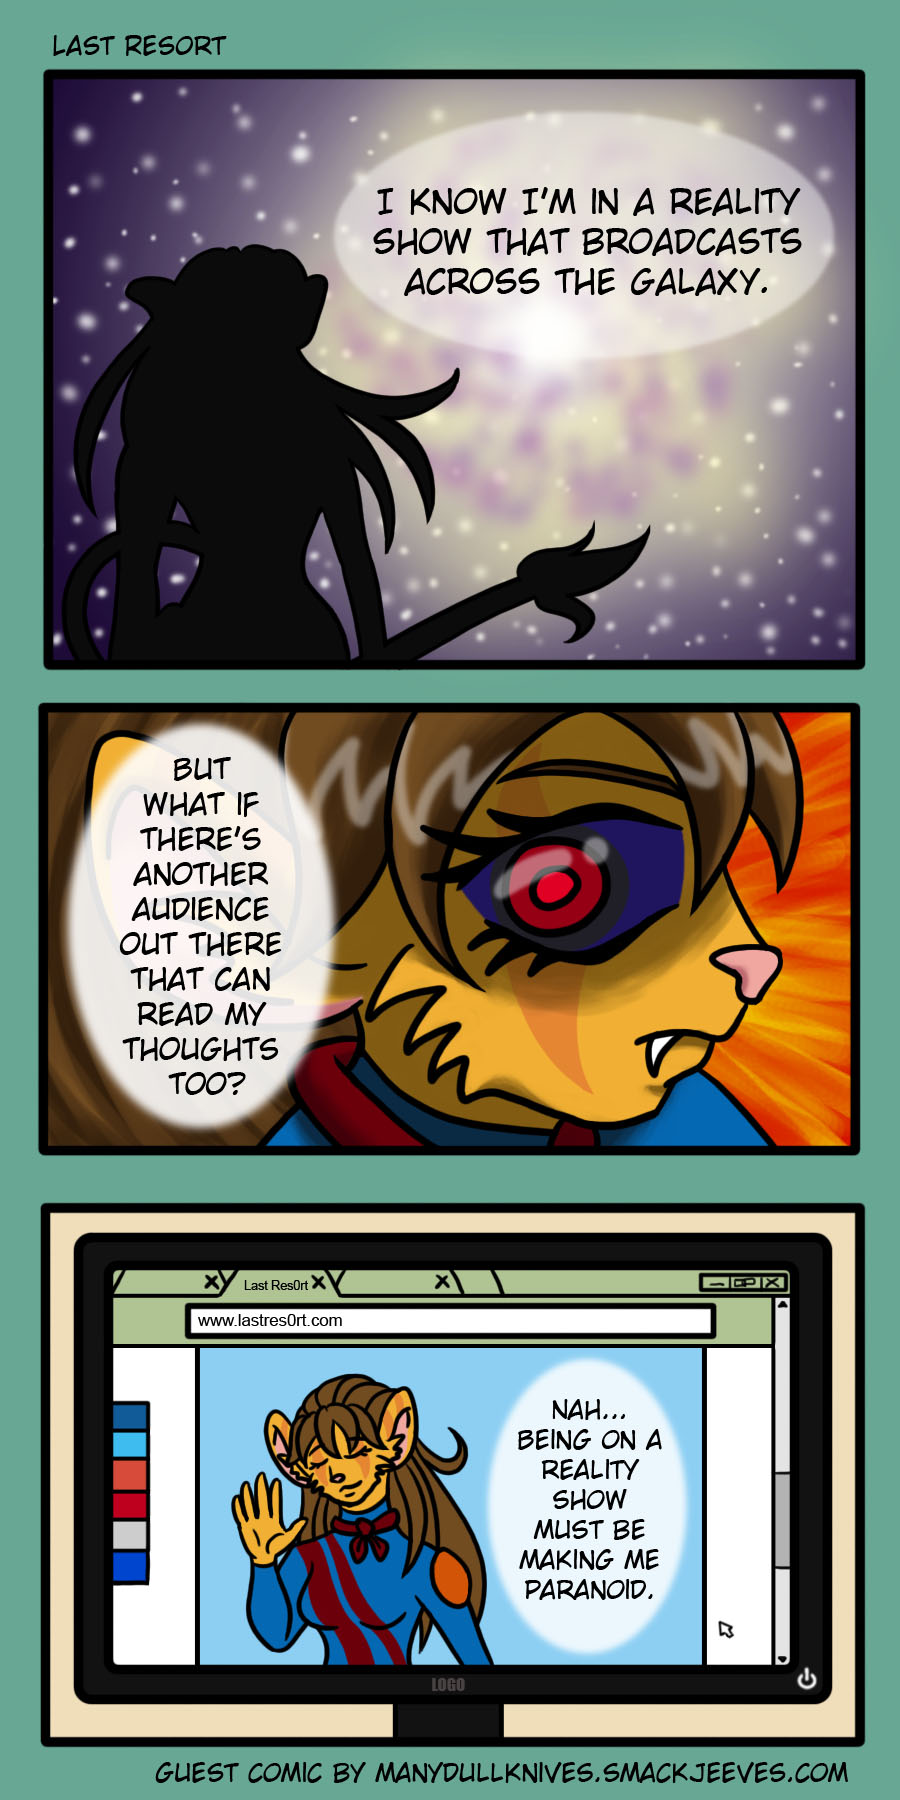 [GUEST COMIC] Comiception.